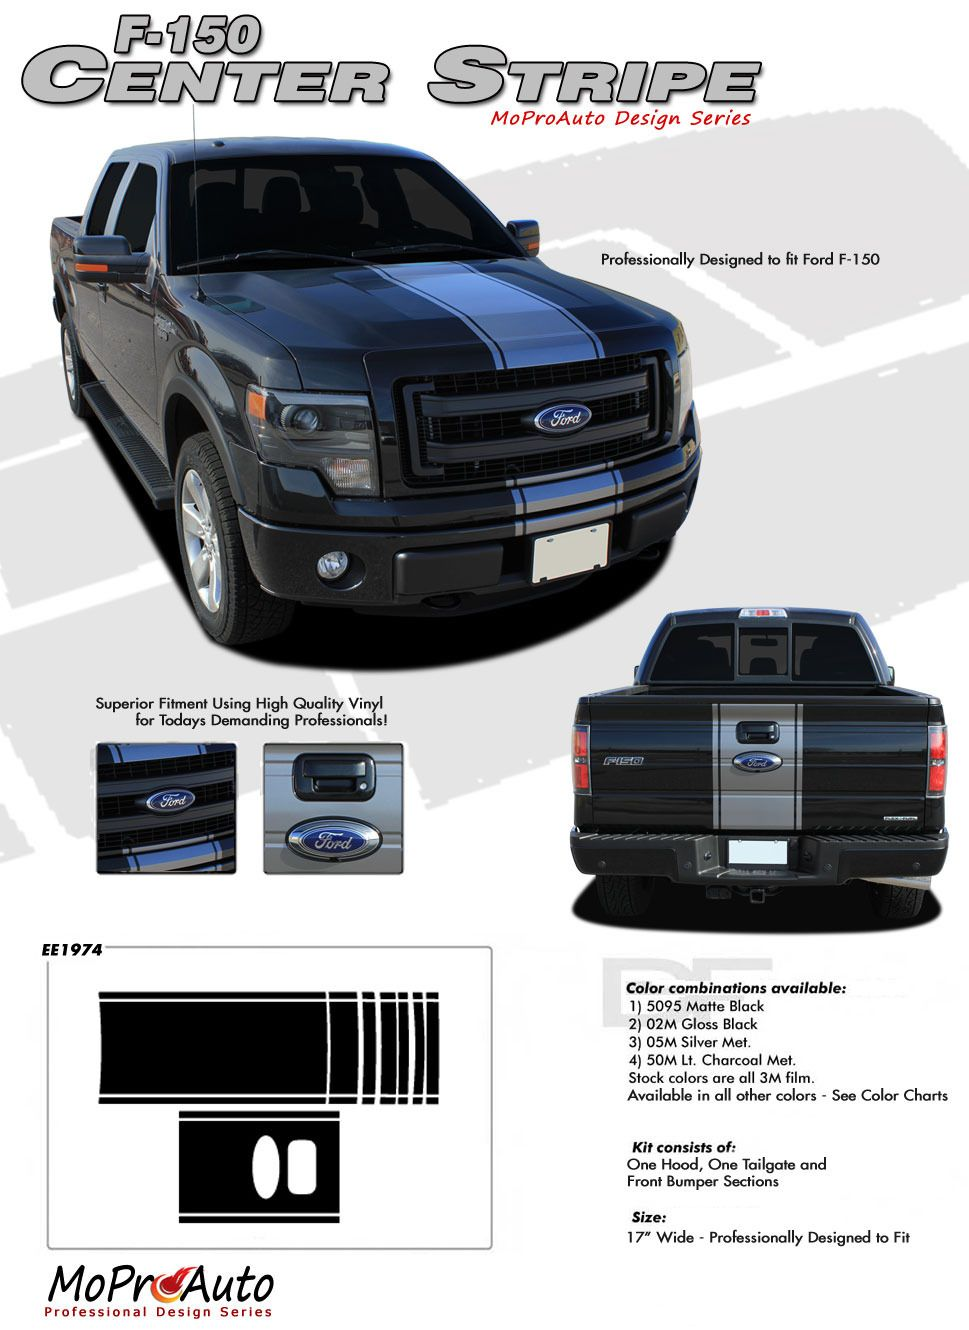 2011 F150 Front Bumper : front, bumper, F-150, CENTER, STRIPE, Racing, Stripes, Vinyl, Graphics, Decals, Models, F150,, Stripes,